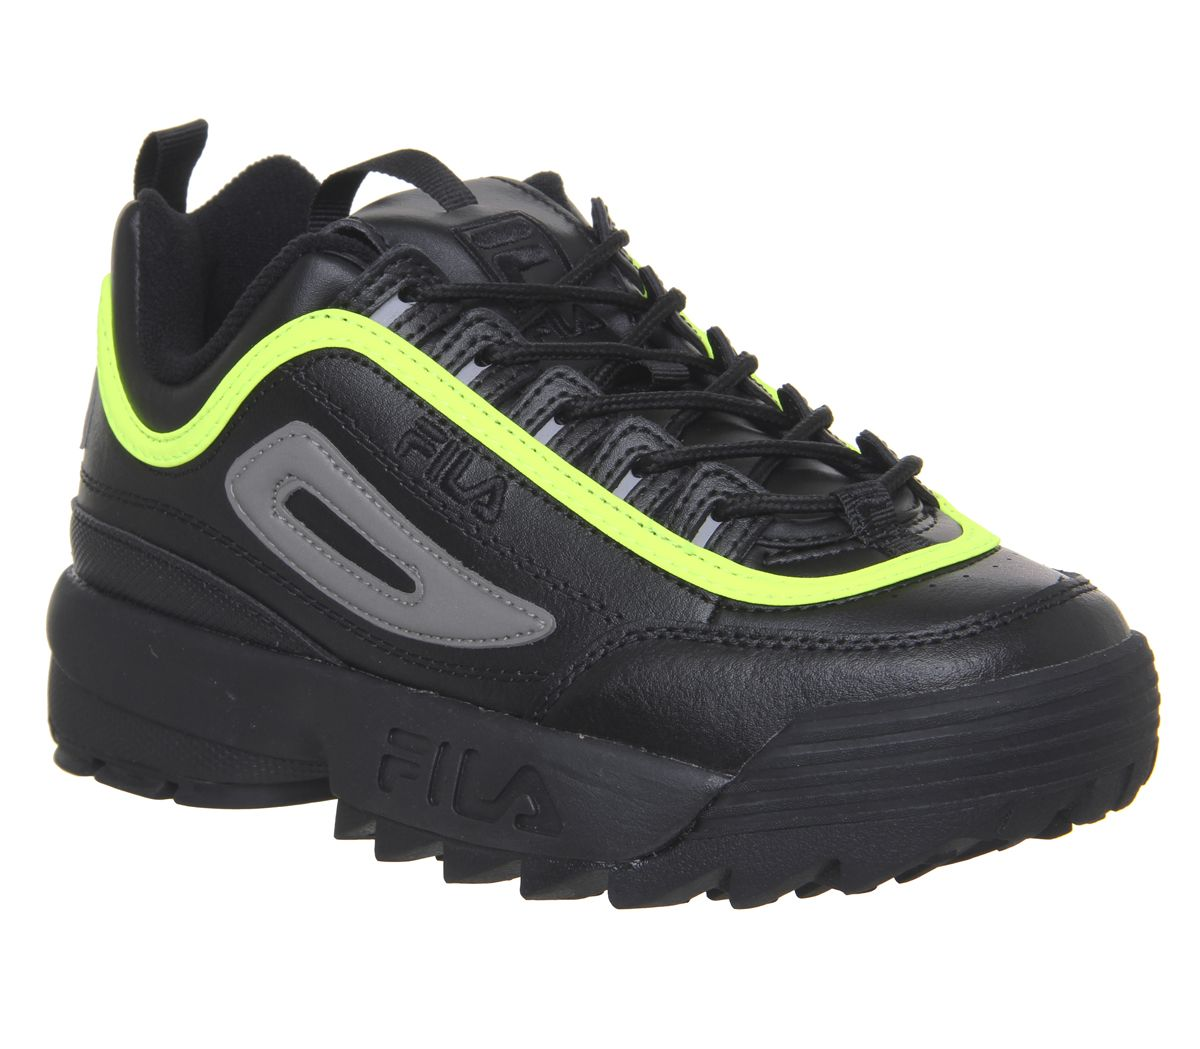 f743deadfc7ba Sentinel Womens Fila Disruptor Ii Trainers Black Black Safety Yellow Trainers  Shoes